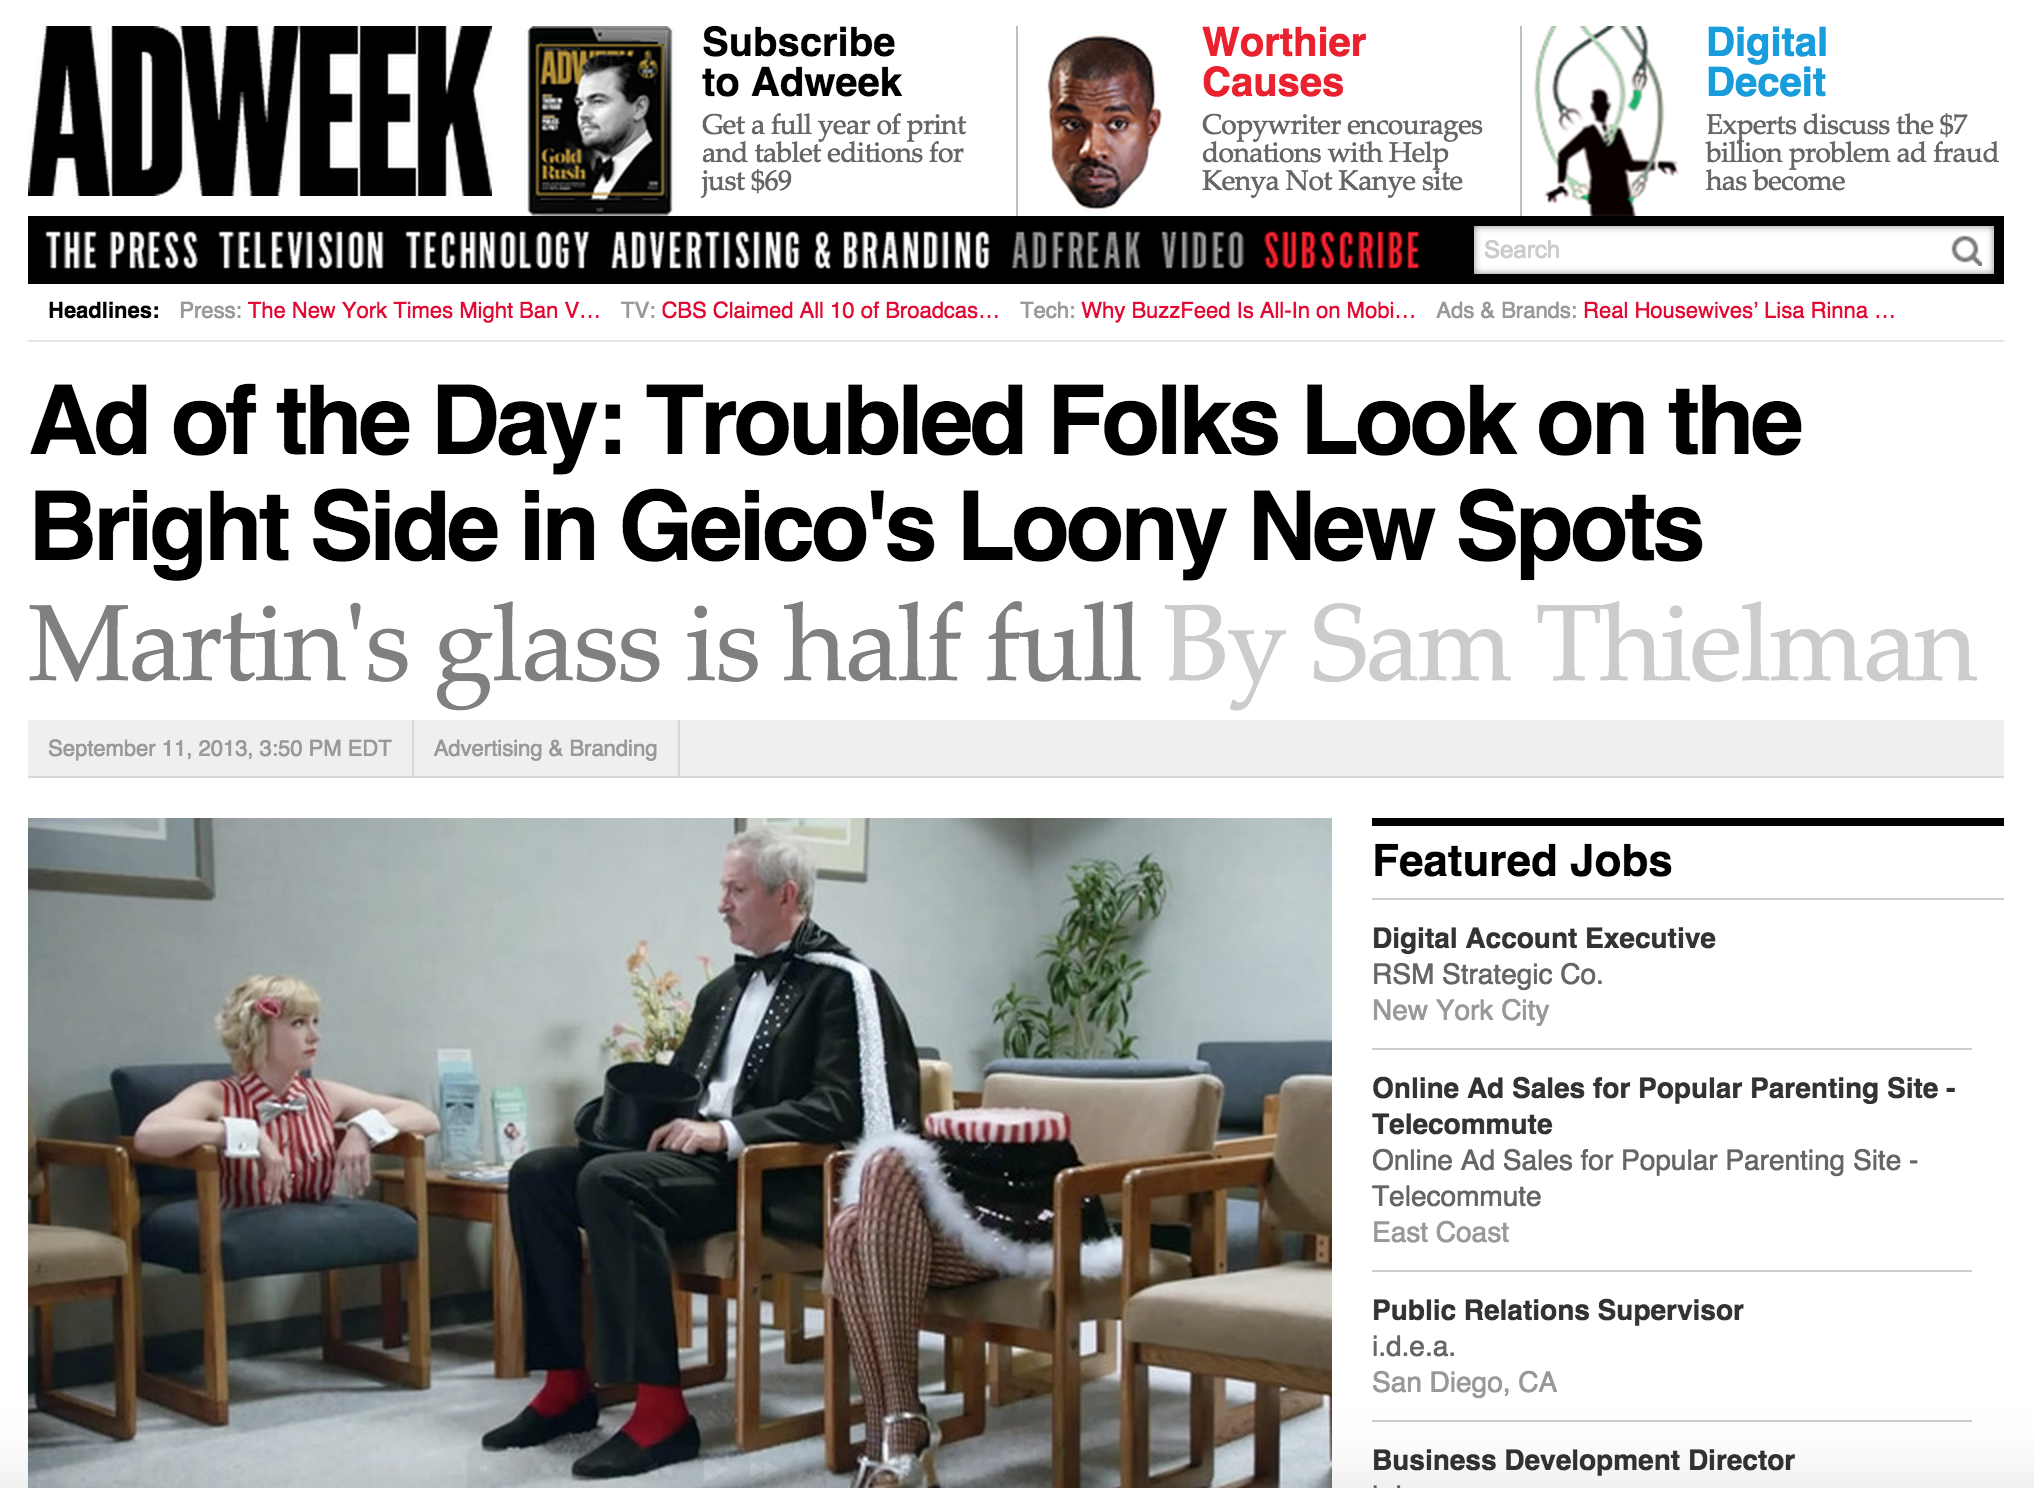 Troubled Folks Look on the Bright Side in Geico's Loony New Spots